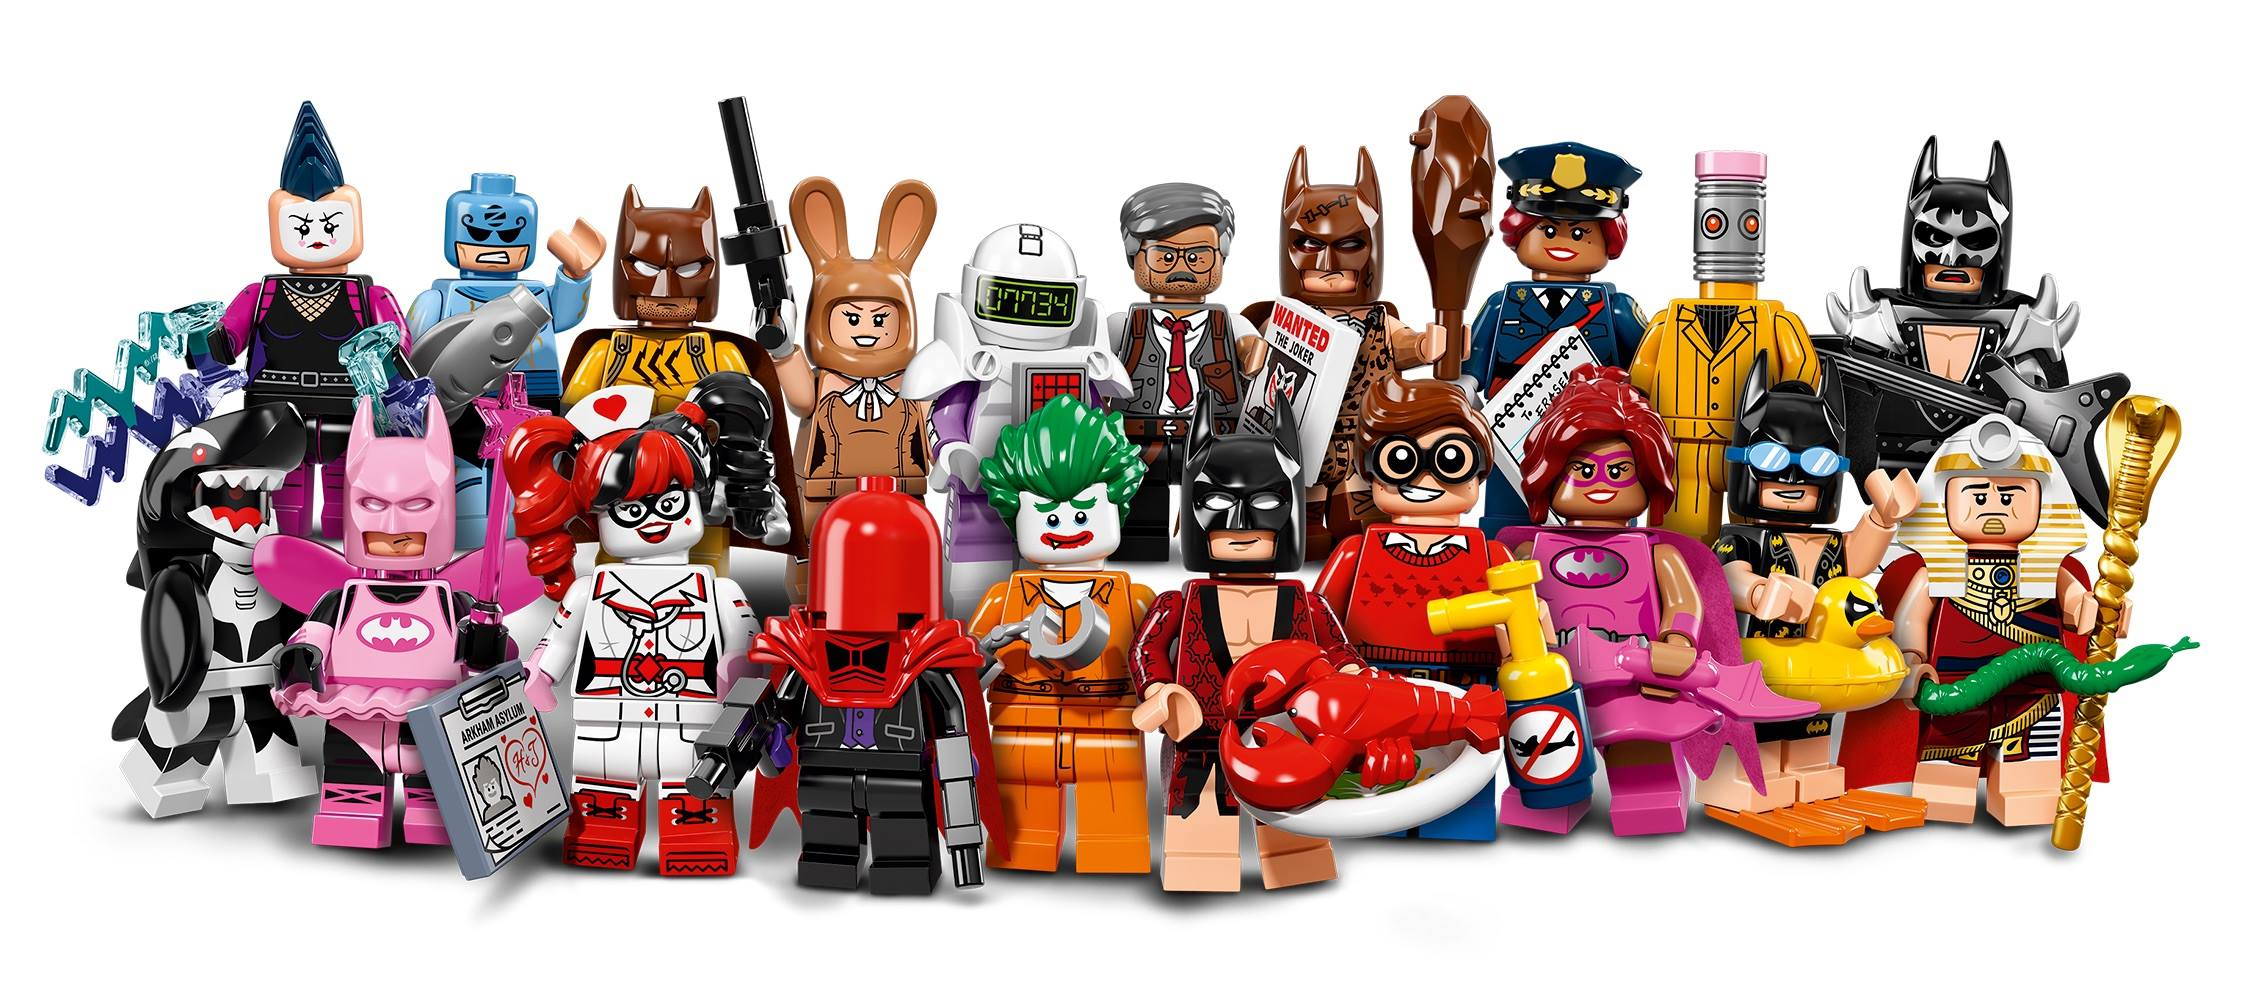 http://jaysbrickblog.com/wp-content/uploads/2016/11/LEGO-Batman-Movie-Minifigures.jpg